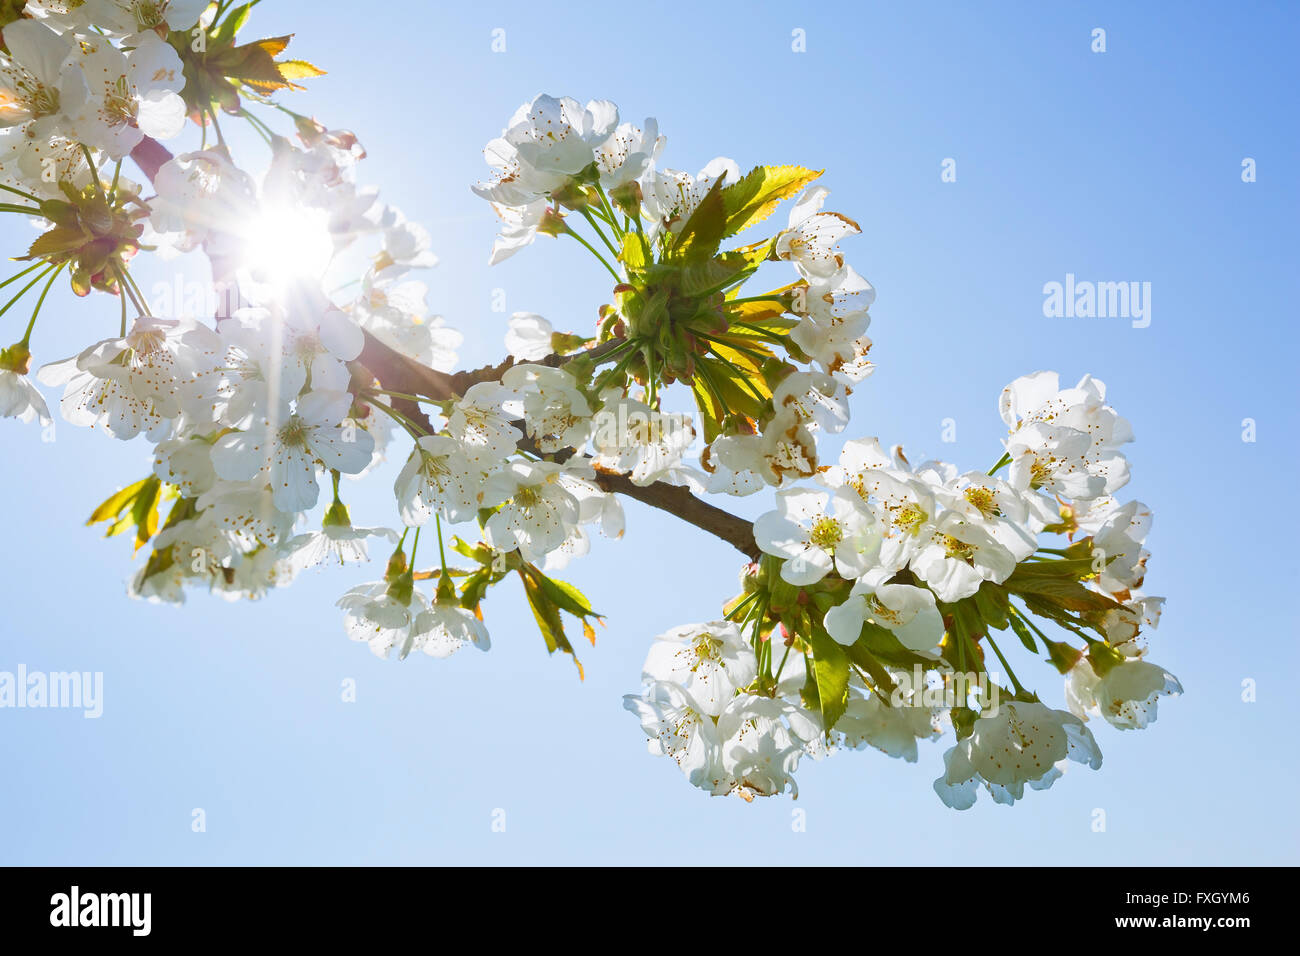 Twig of a cherry tree in blossom. Stock Photo